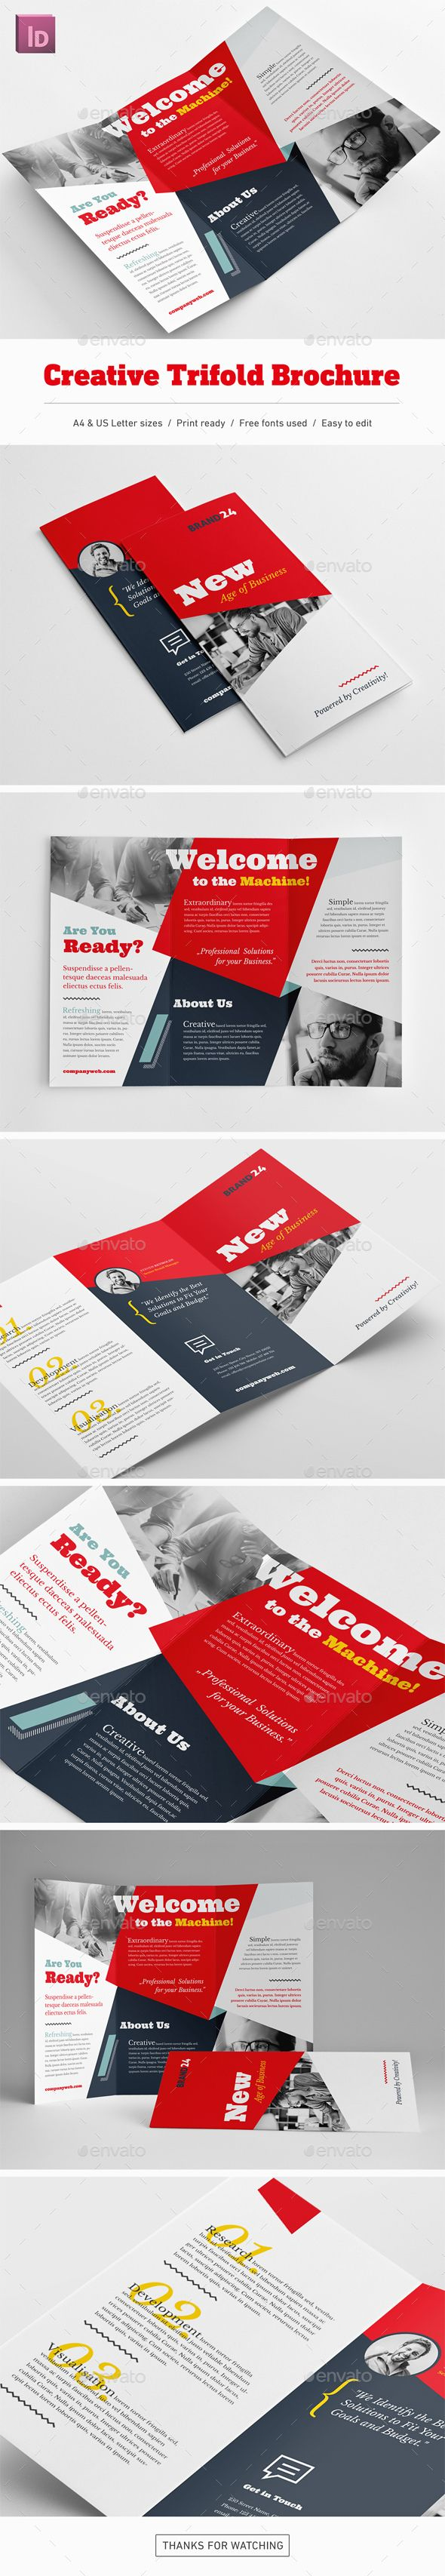 Creative Trifold Brochure Template InDesign INDD - A4 & US Letter Size